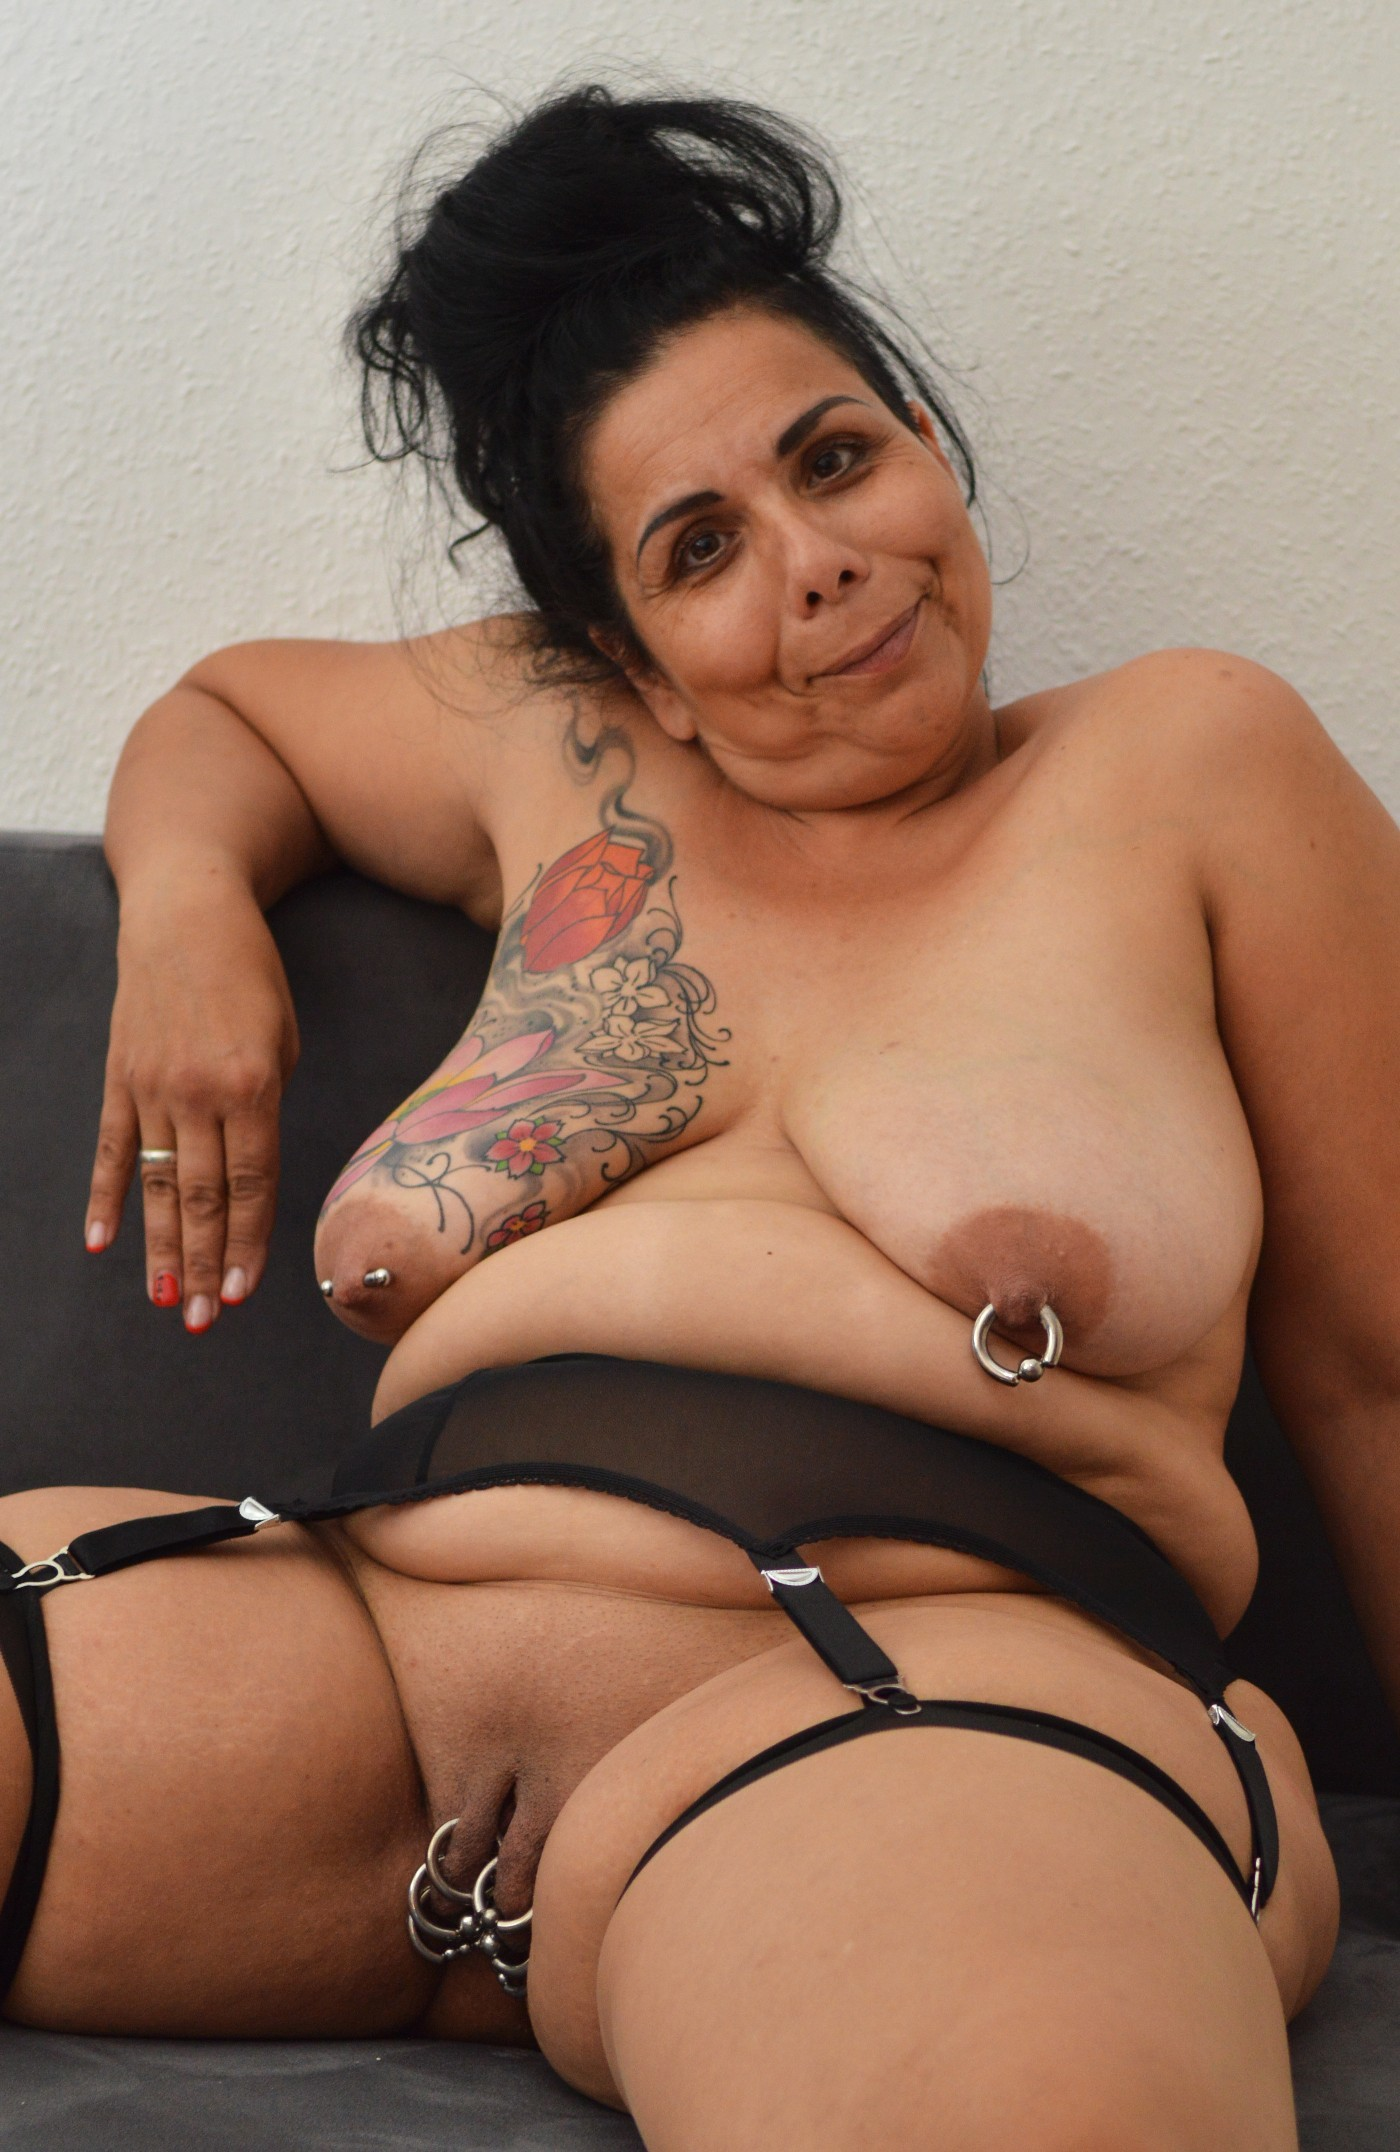 nude-bbw-with-piercings